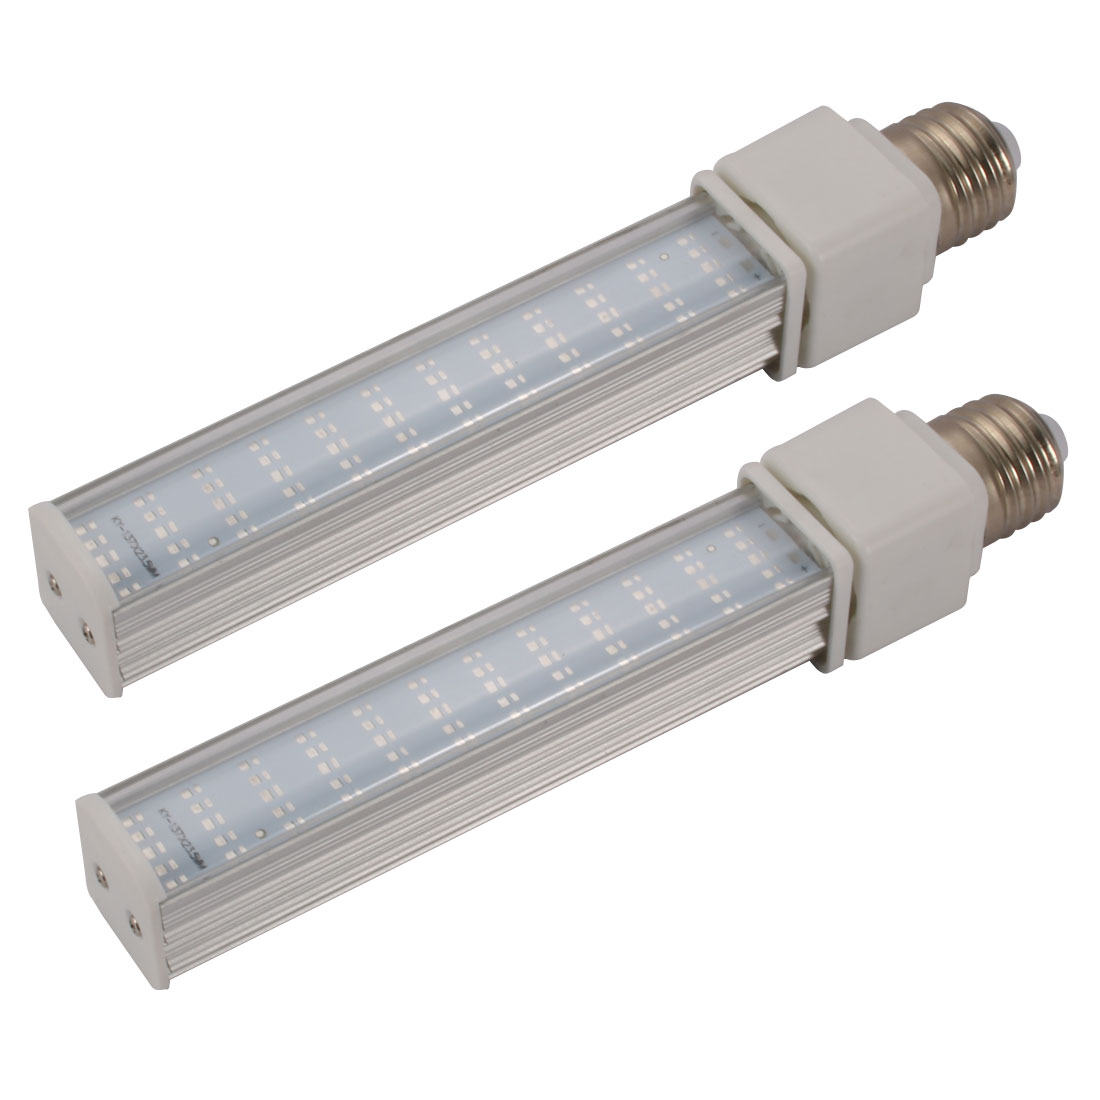 2pack DIY parts for PLC Lamp E27 12W PL-C Lamp Housing Kit w Clear Striped Cover